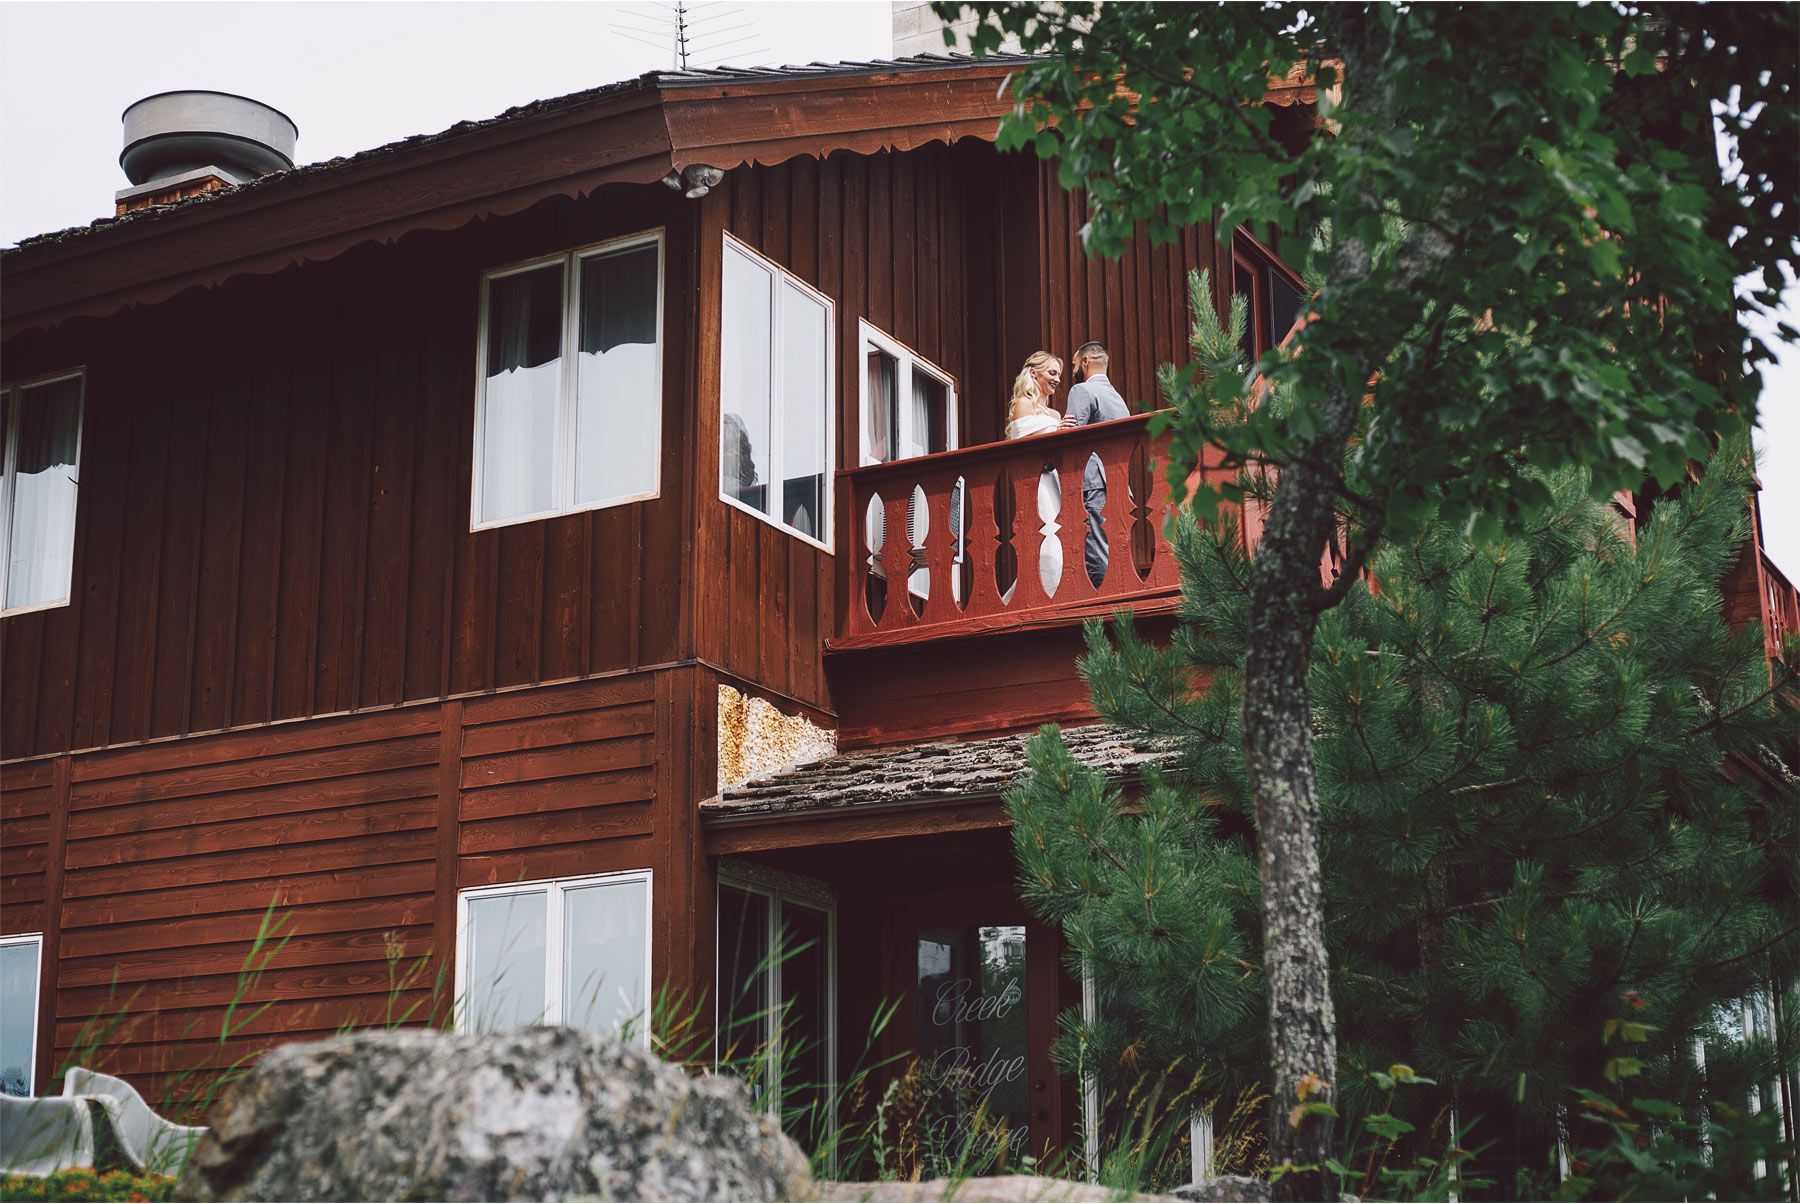 04-Ely-Minnesota-North-Wedding-by-Andrew-Vick-Photography-Bride-Groom-First-Look-Cabin-Woods-Katie-and-Joe.jpg